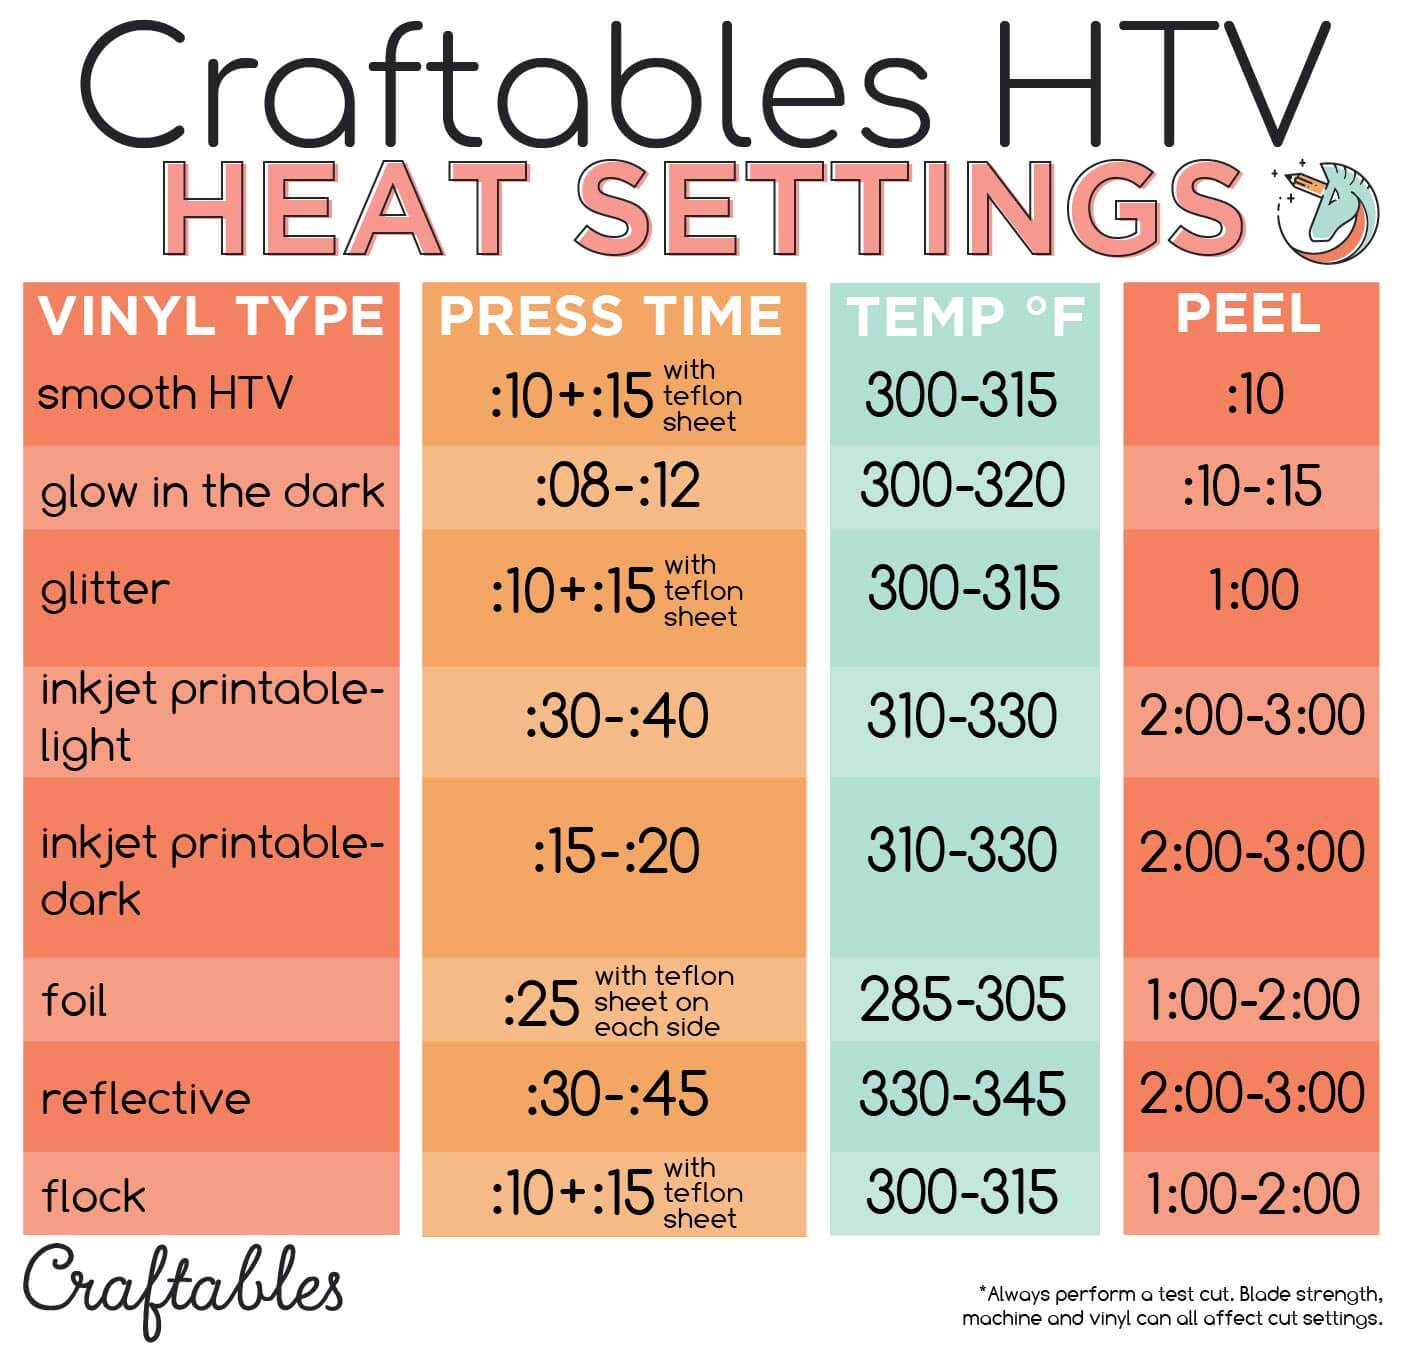 htv-heat-settings-chart.jpg